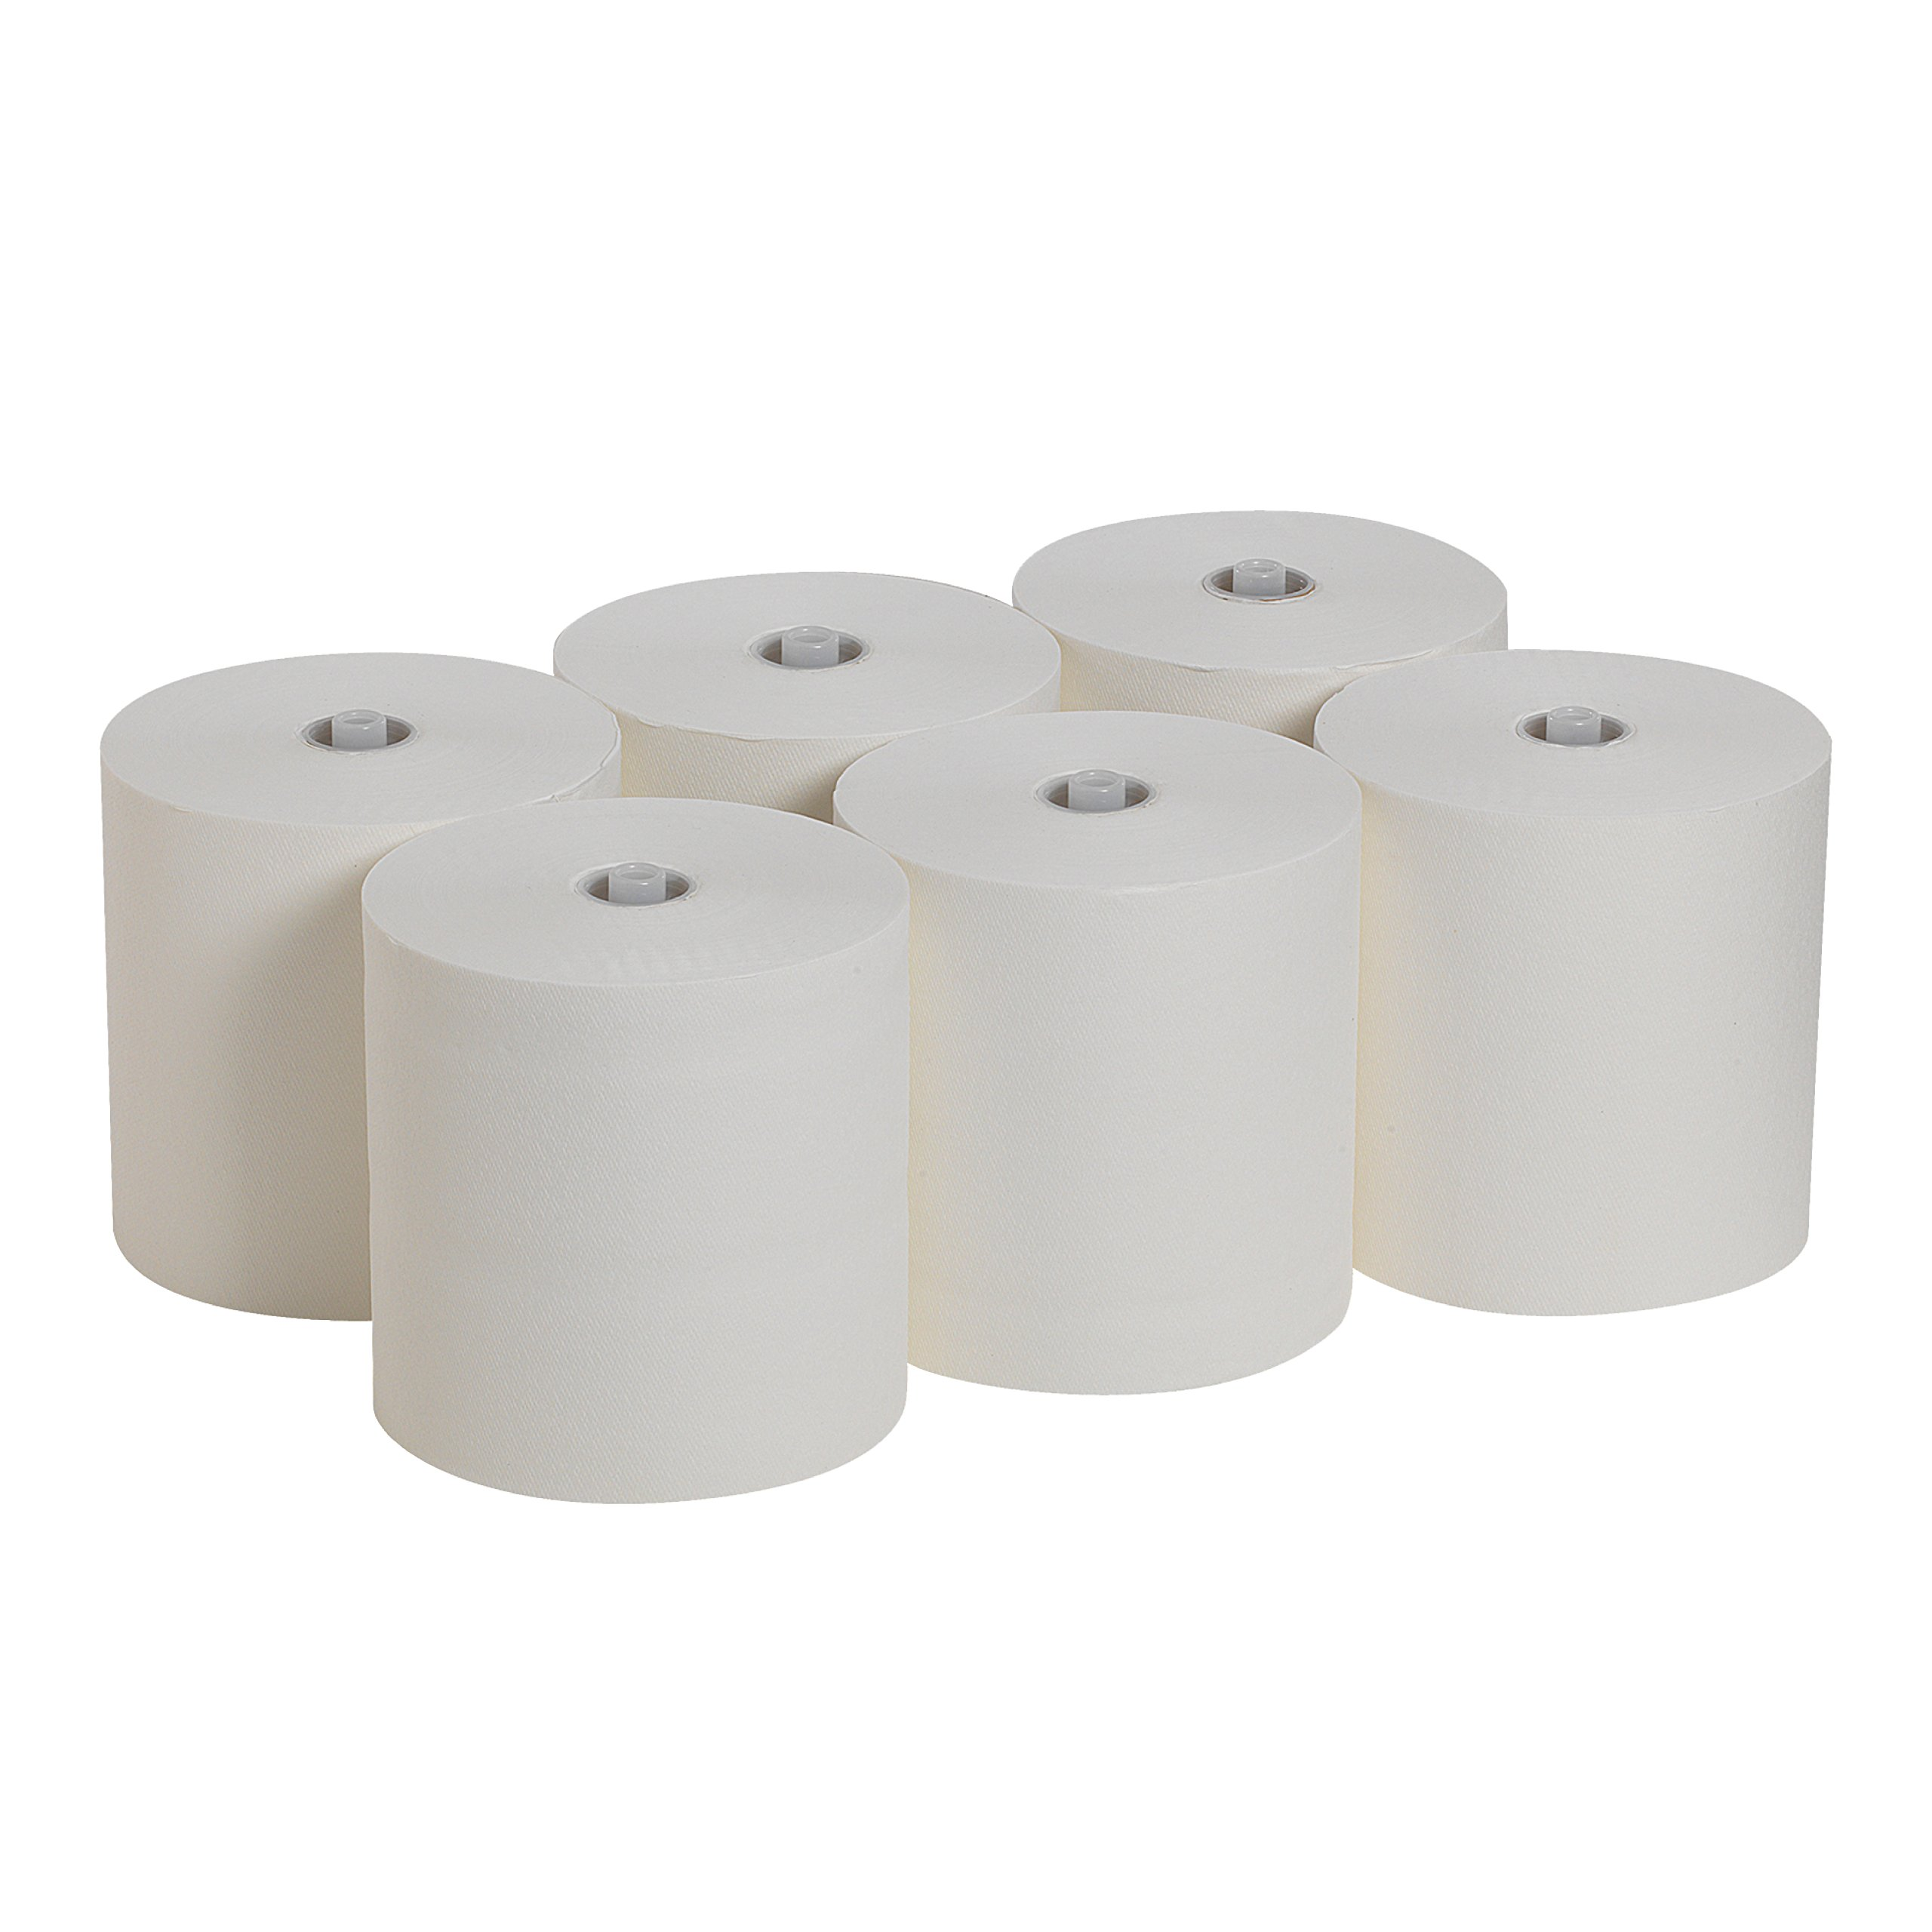 """Pacific Blue Ultra 8"""" High-Capacity Recycled Paper Towel Roll by GP PRO (Georgia-Pacific), White, 26490, 1150 Feet Per Roll, 6 Rolls Per Case"""